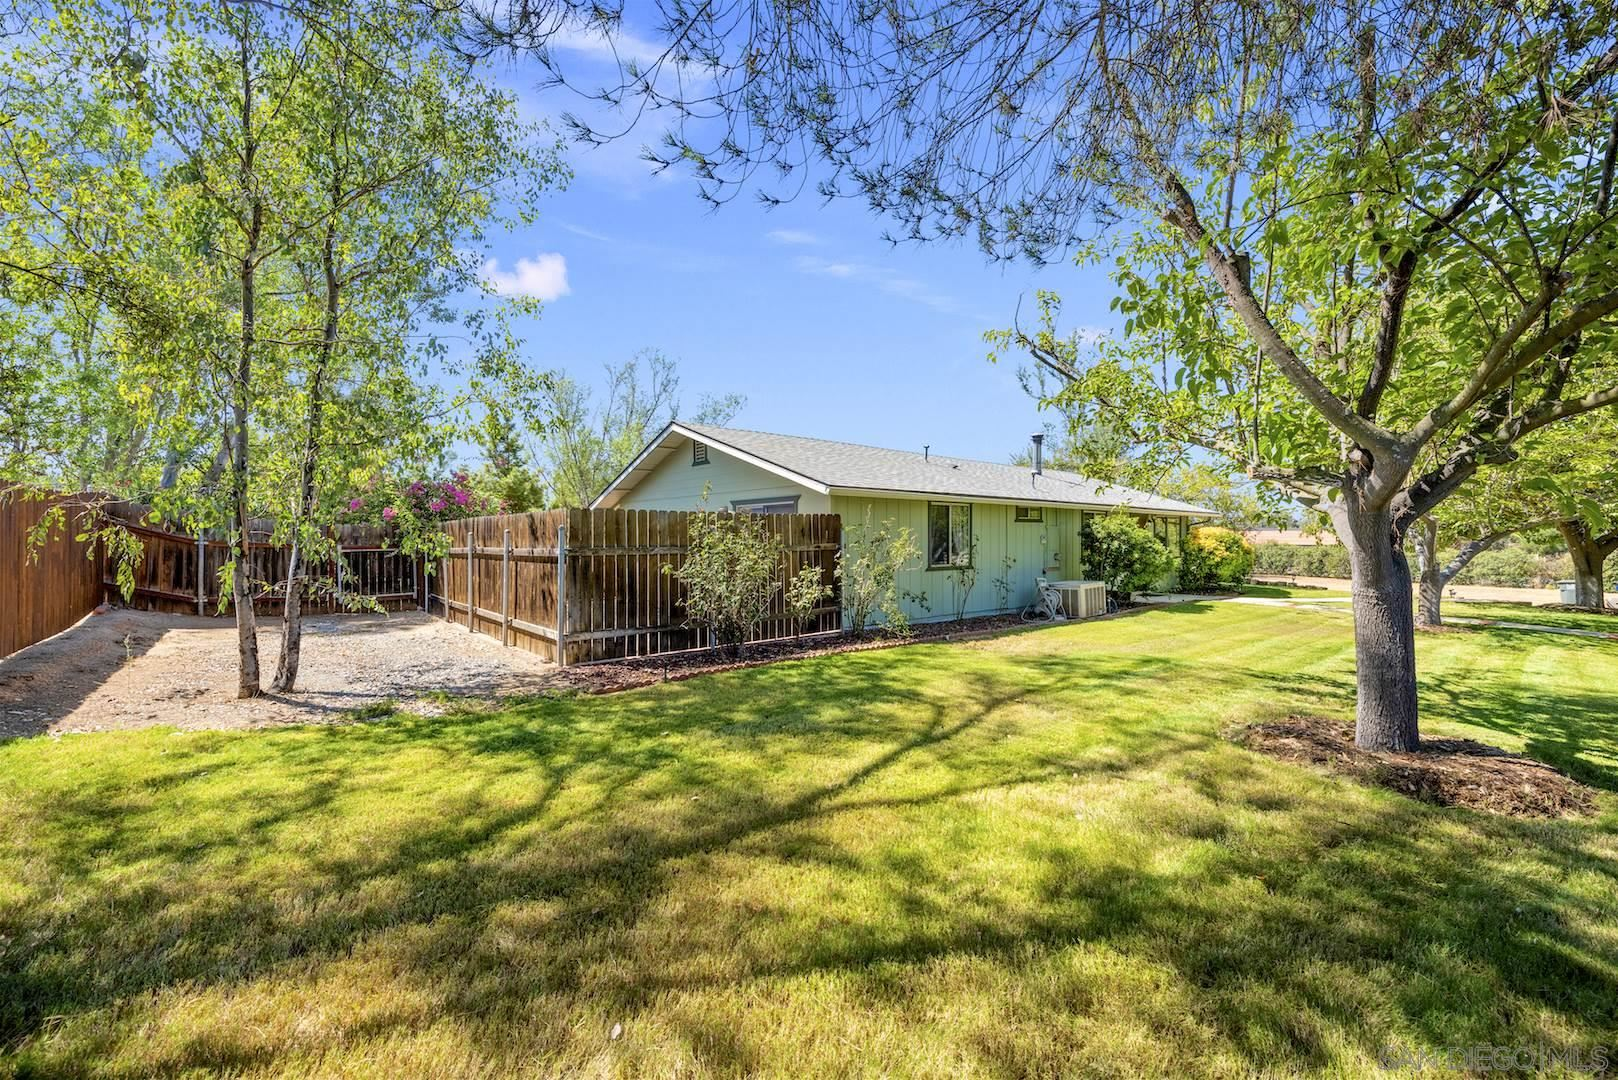 Photo of 620 Hanson Ln, Ramona, CA 92065 (MLS # 200049282)